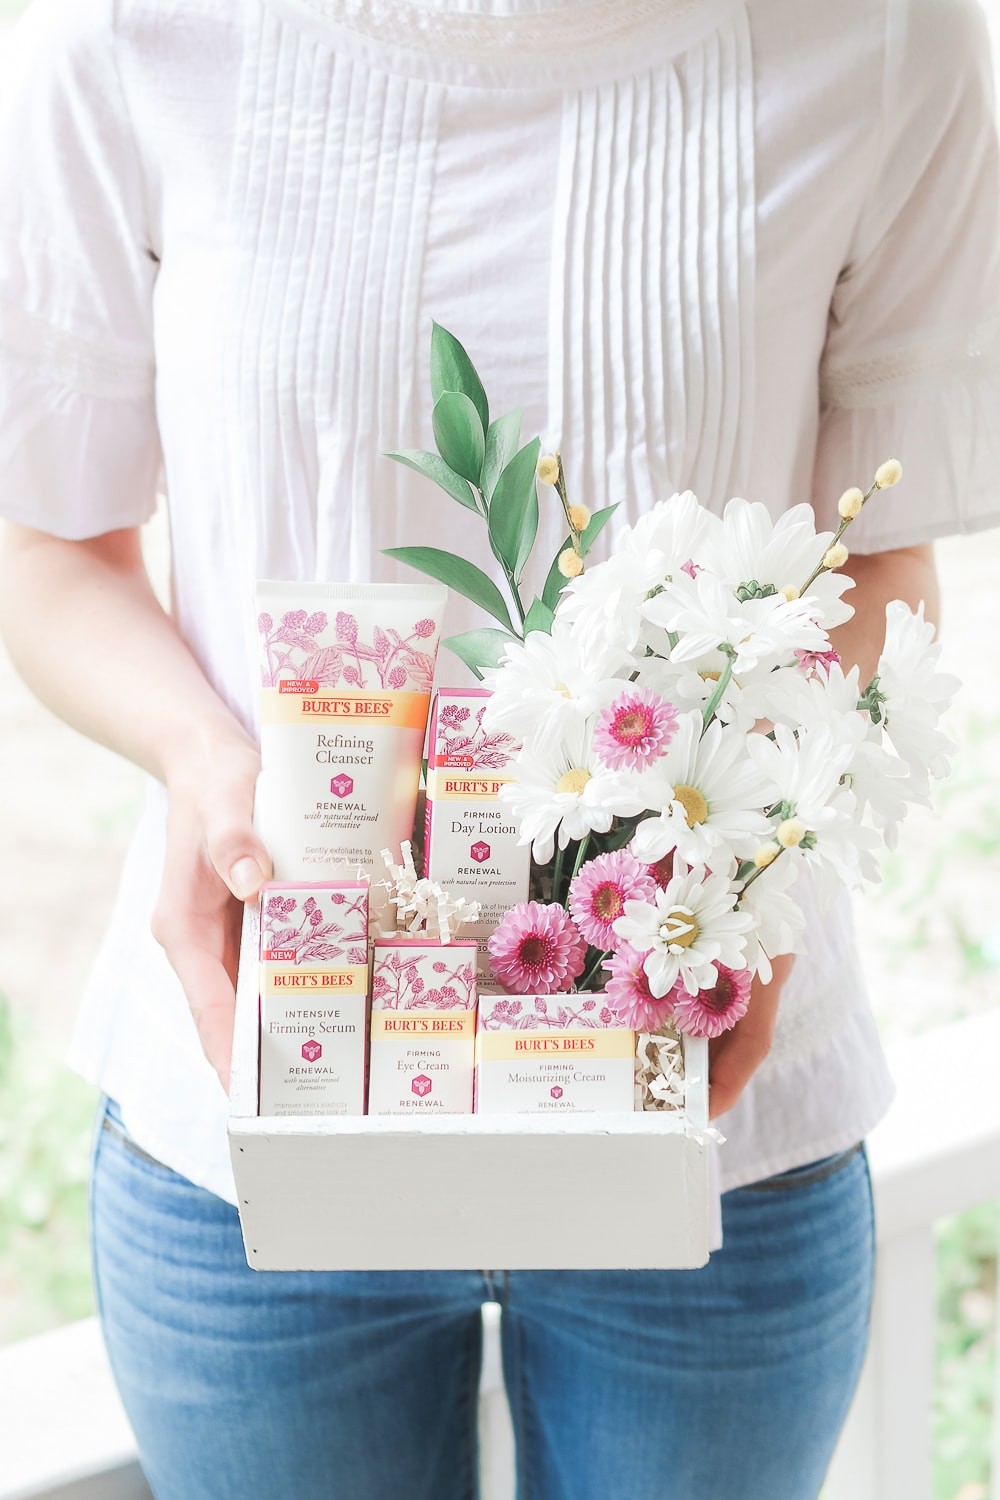 Beauty blogger Stephanie Ziajka shares a DIY flower gift box tutorial using her favorite products from the Burt's Bees Renewal skincare line and affordable mothers day flowers on Diary of a Debutante